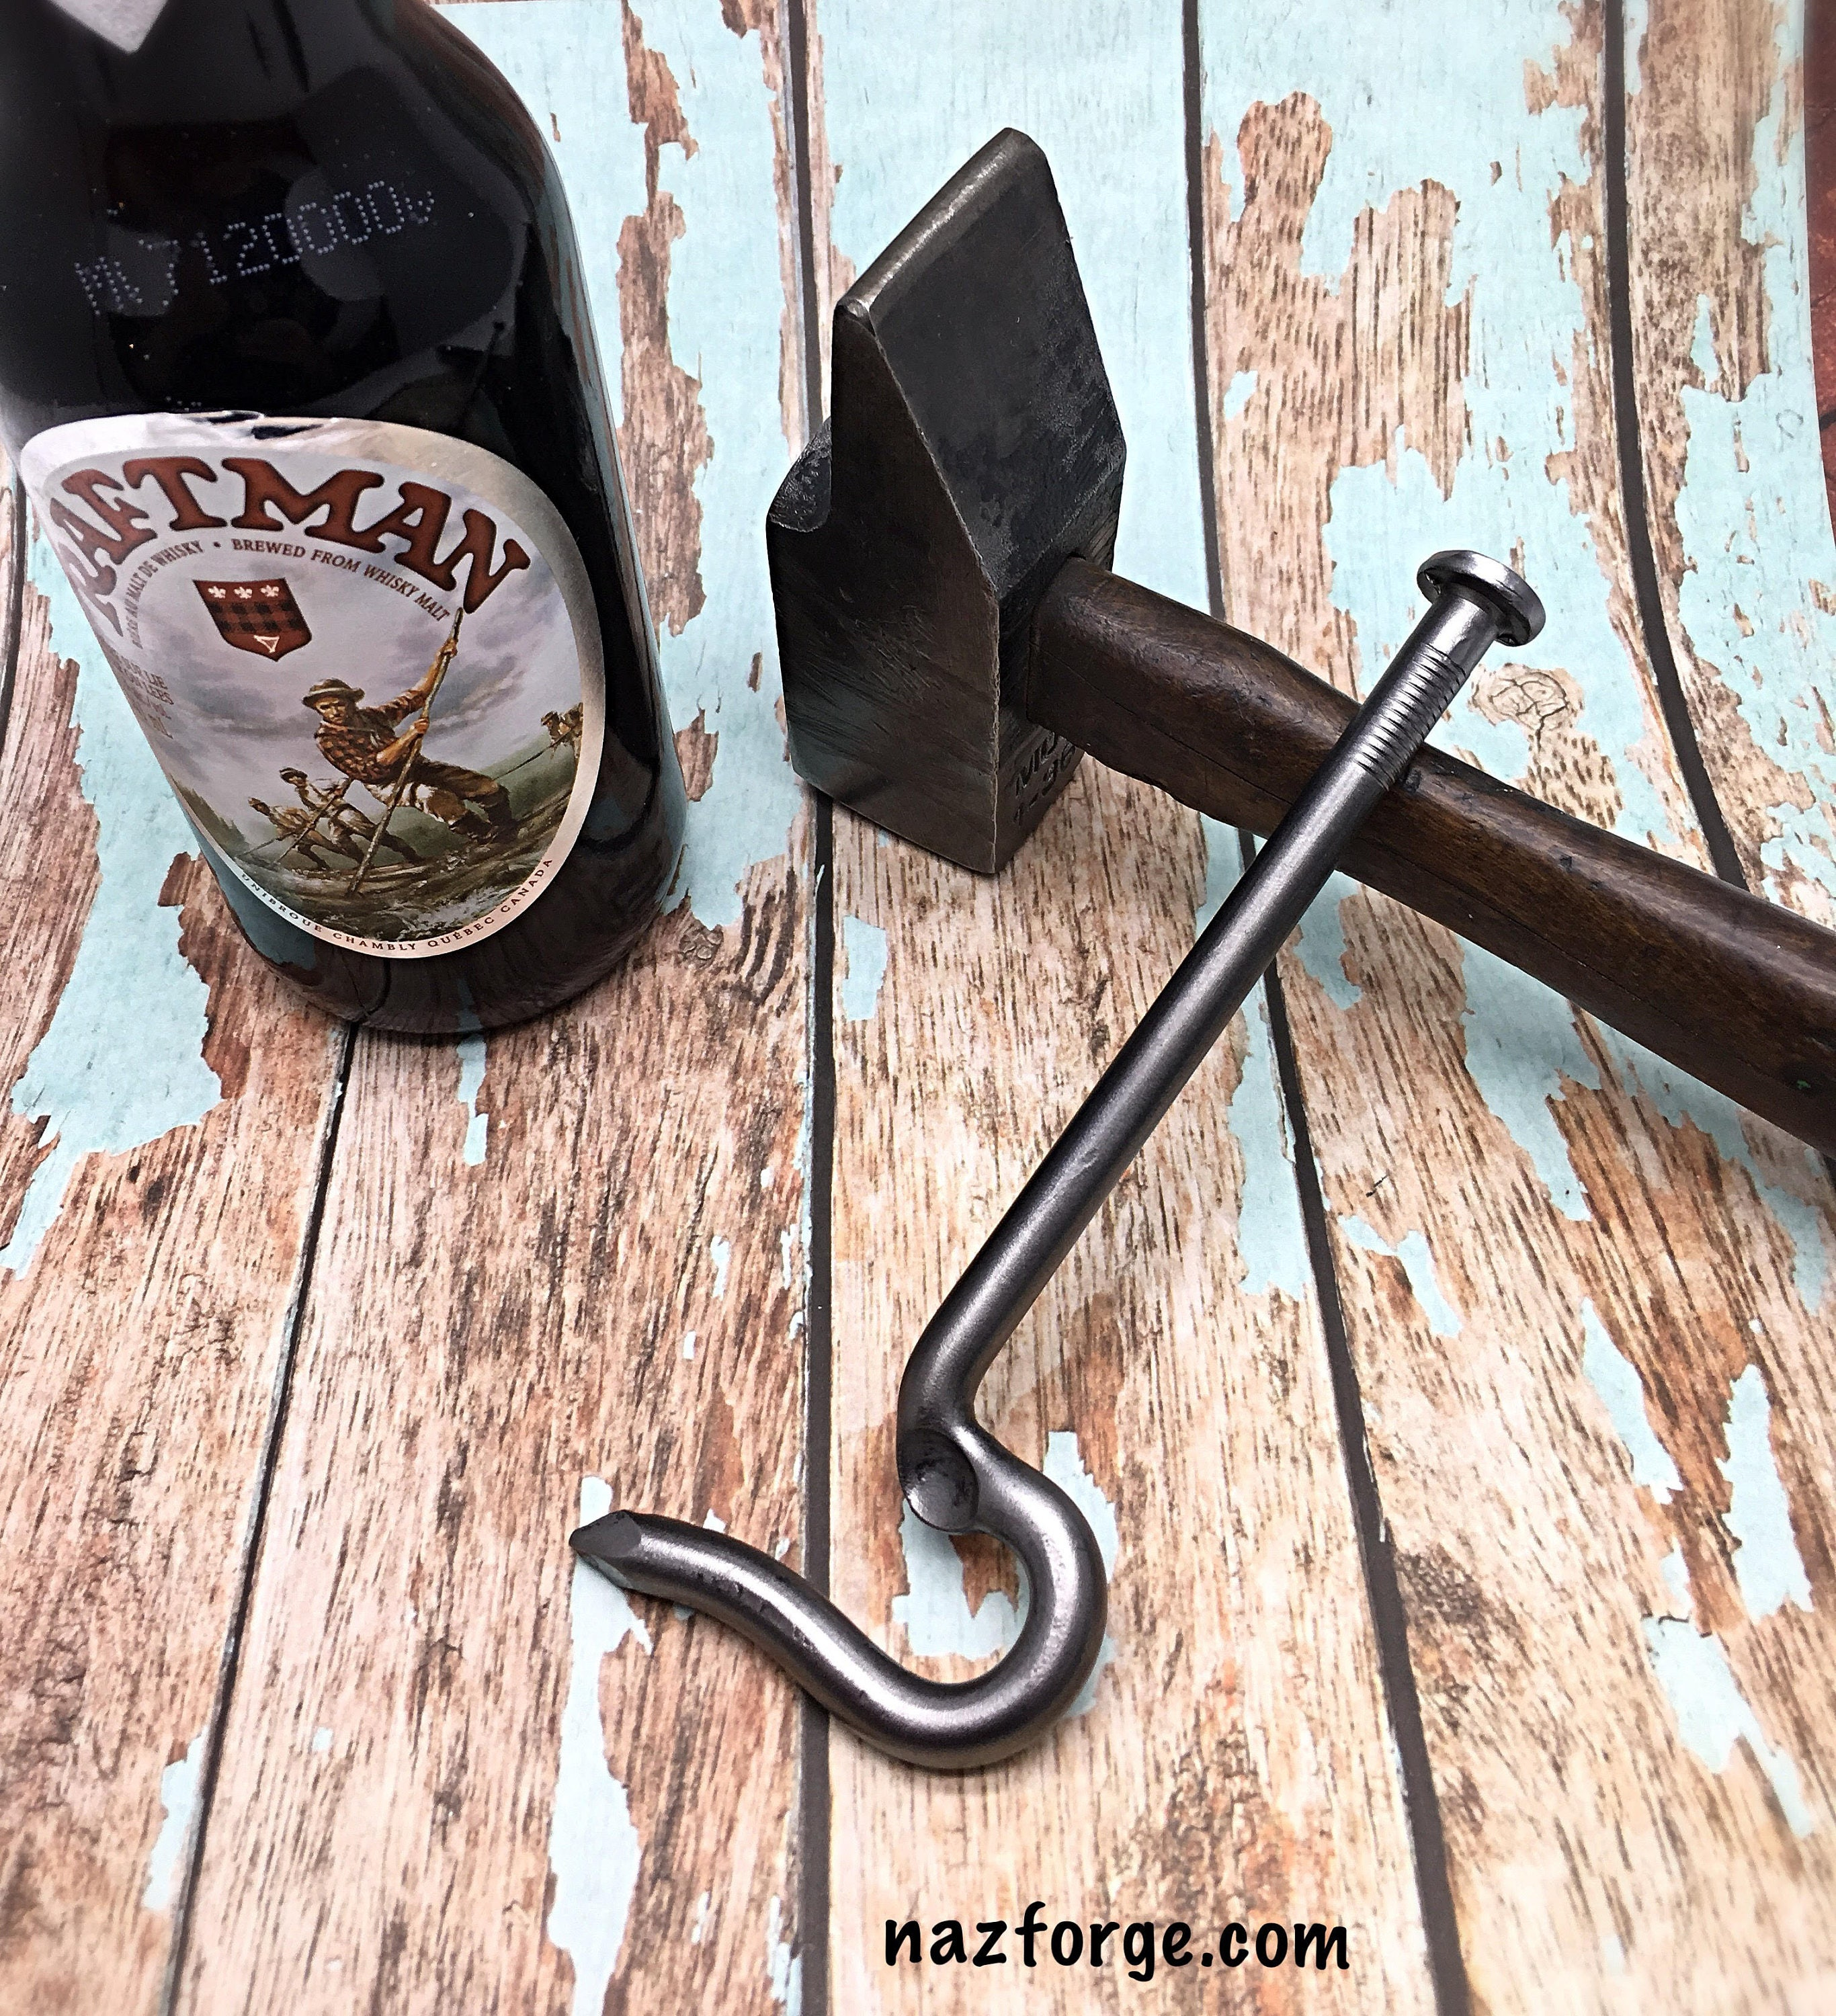 NAIL IT !!.. Hand Made from a Large Nail Gifts for Handy Man Men  Boyfriend Husband Personalized Groomsmen Gift Idea Bottle Opener